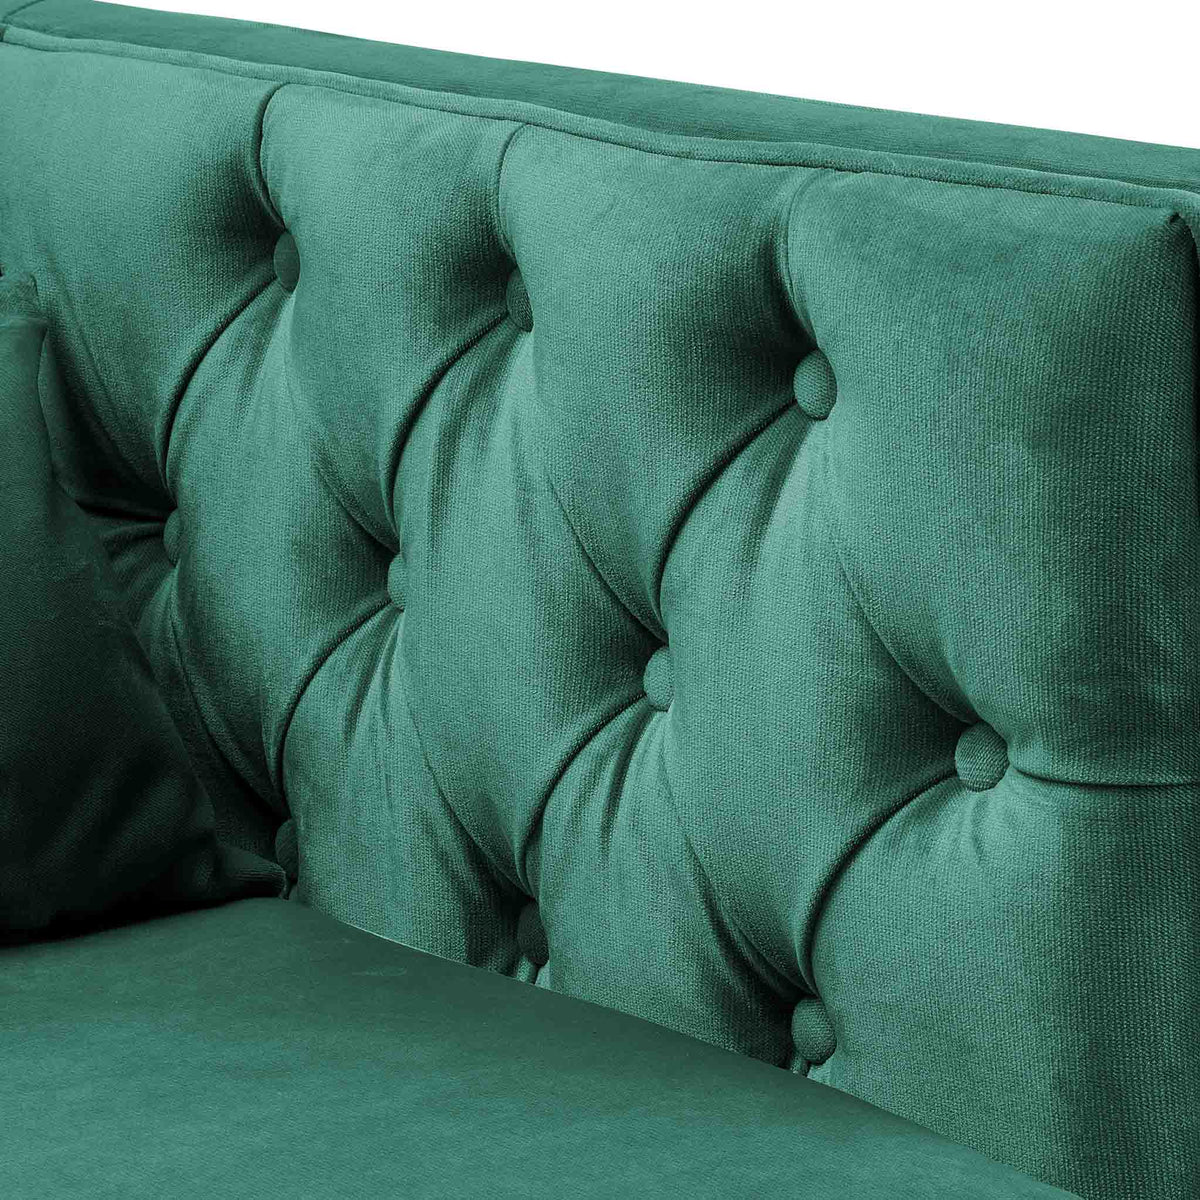 close up of the button tuft detail on the Savoy Jasper Velvet 2 Seater Accent Sofa